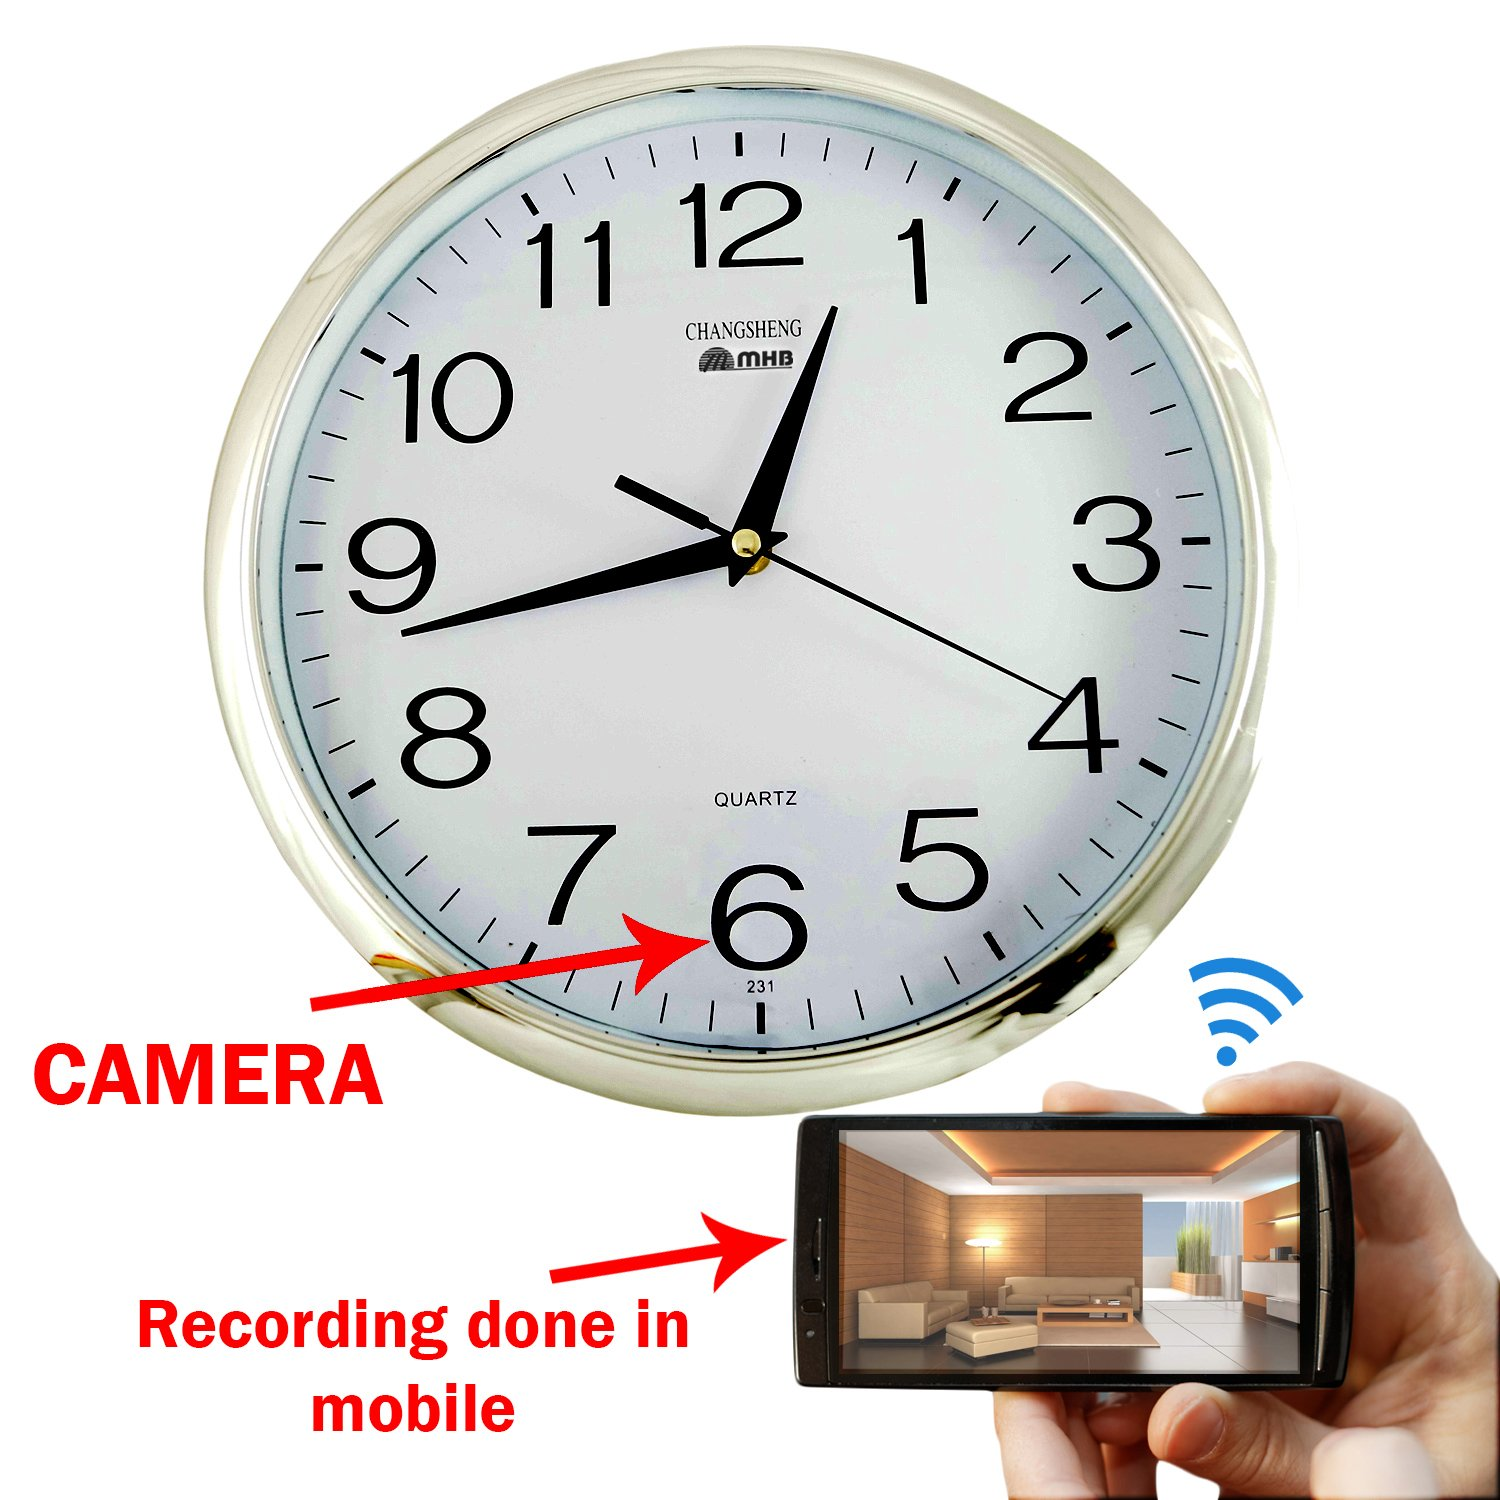 Buy m mhb wifi wall clock hidden spy camera online at low price in buy m mhb wifi wall clock hidden spy camera online at low price in india m mhb camera reviews ratings amazon amipublicfo Images